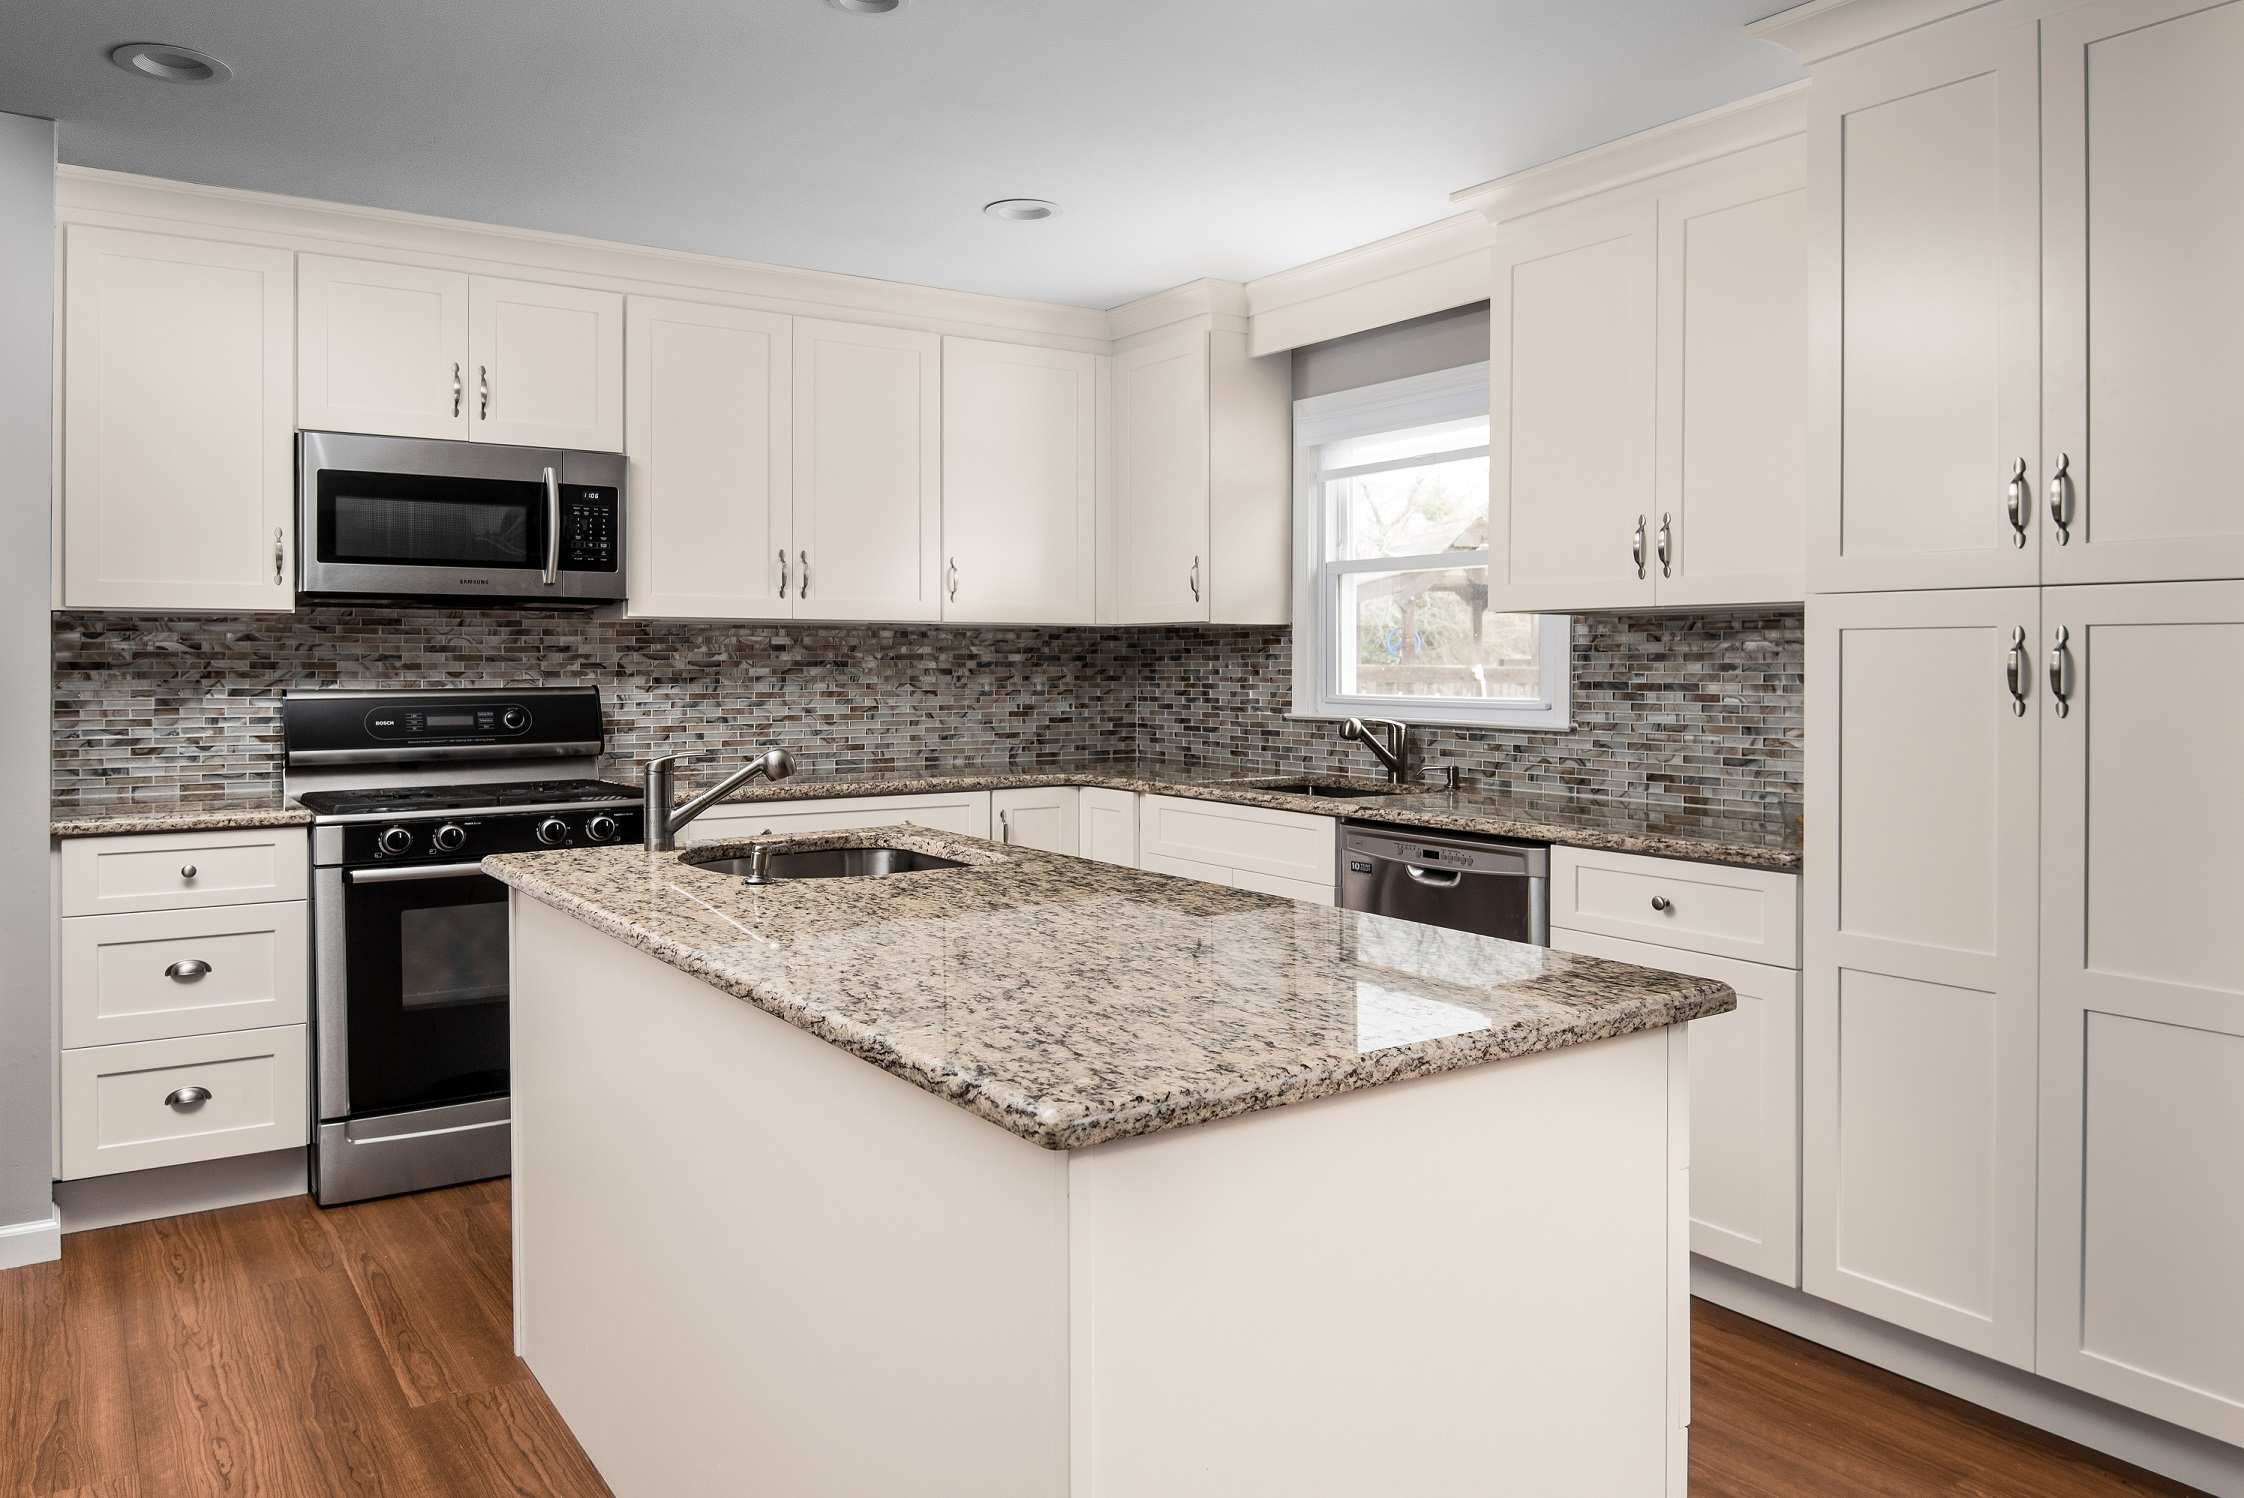 Midtown%20Cream%20Shaker%20Kitchen%20Cabinets